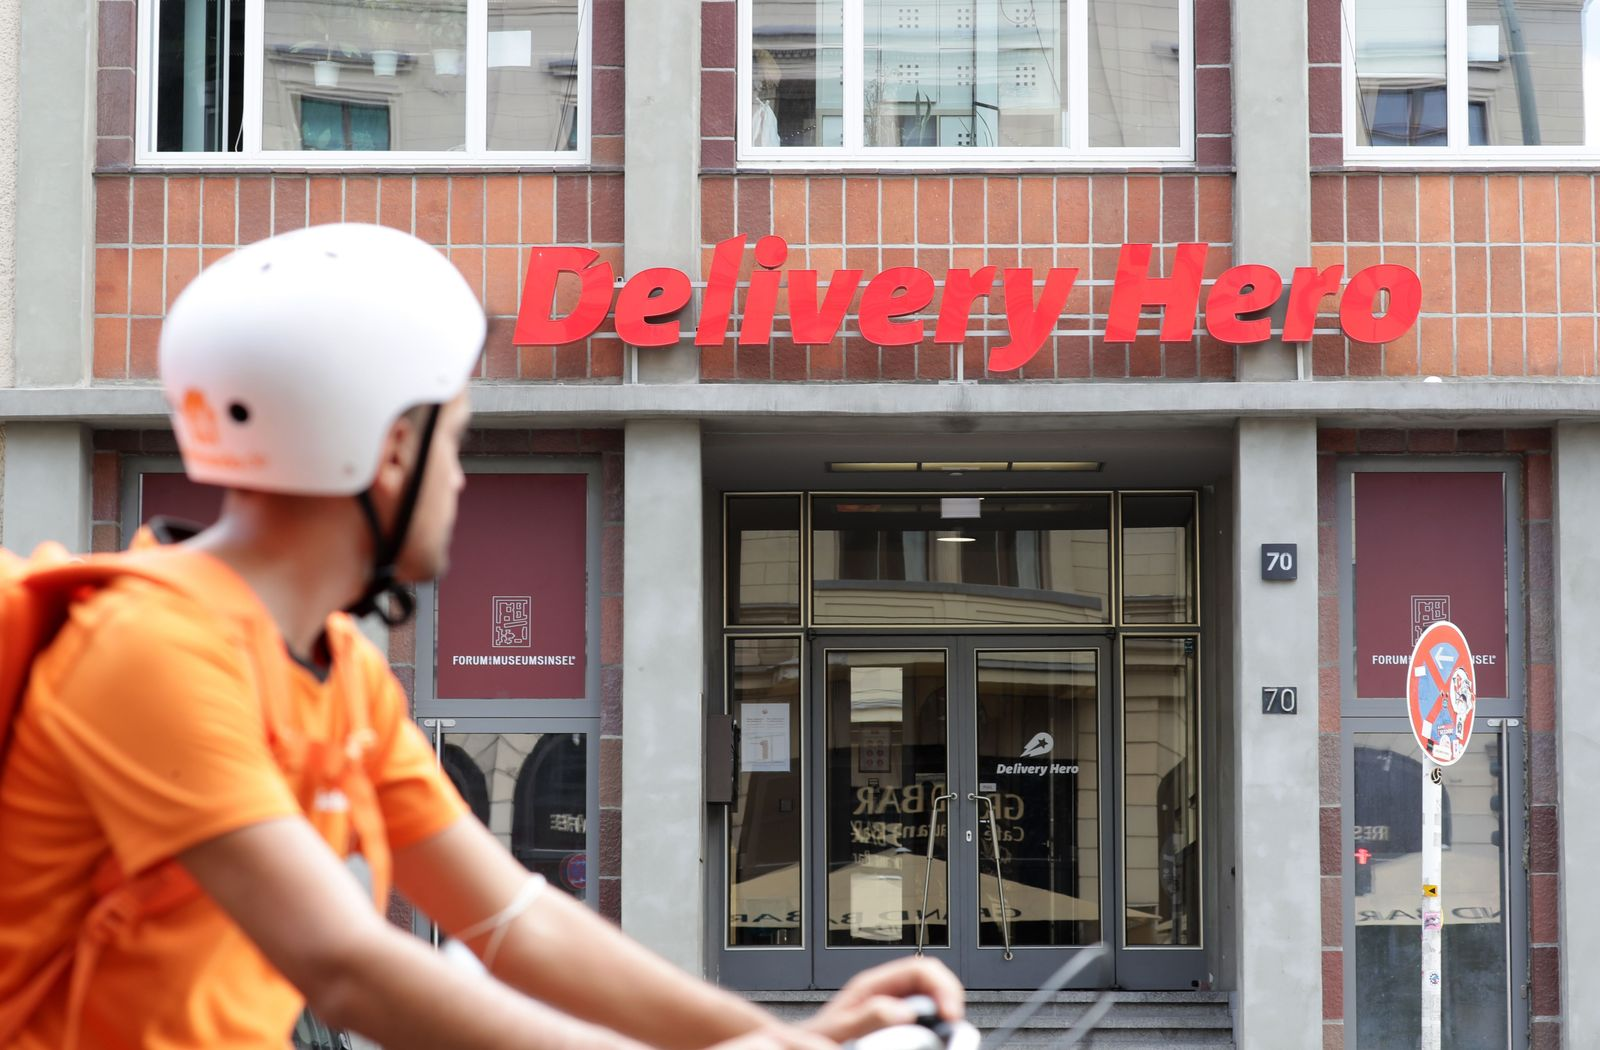 Delivery Here, Berlin, Germany - 20 Aug 2020